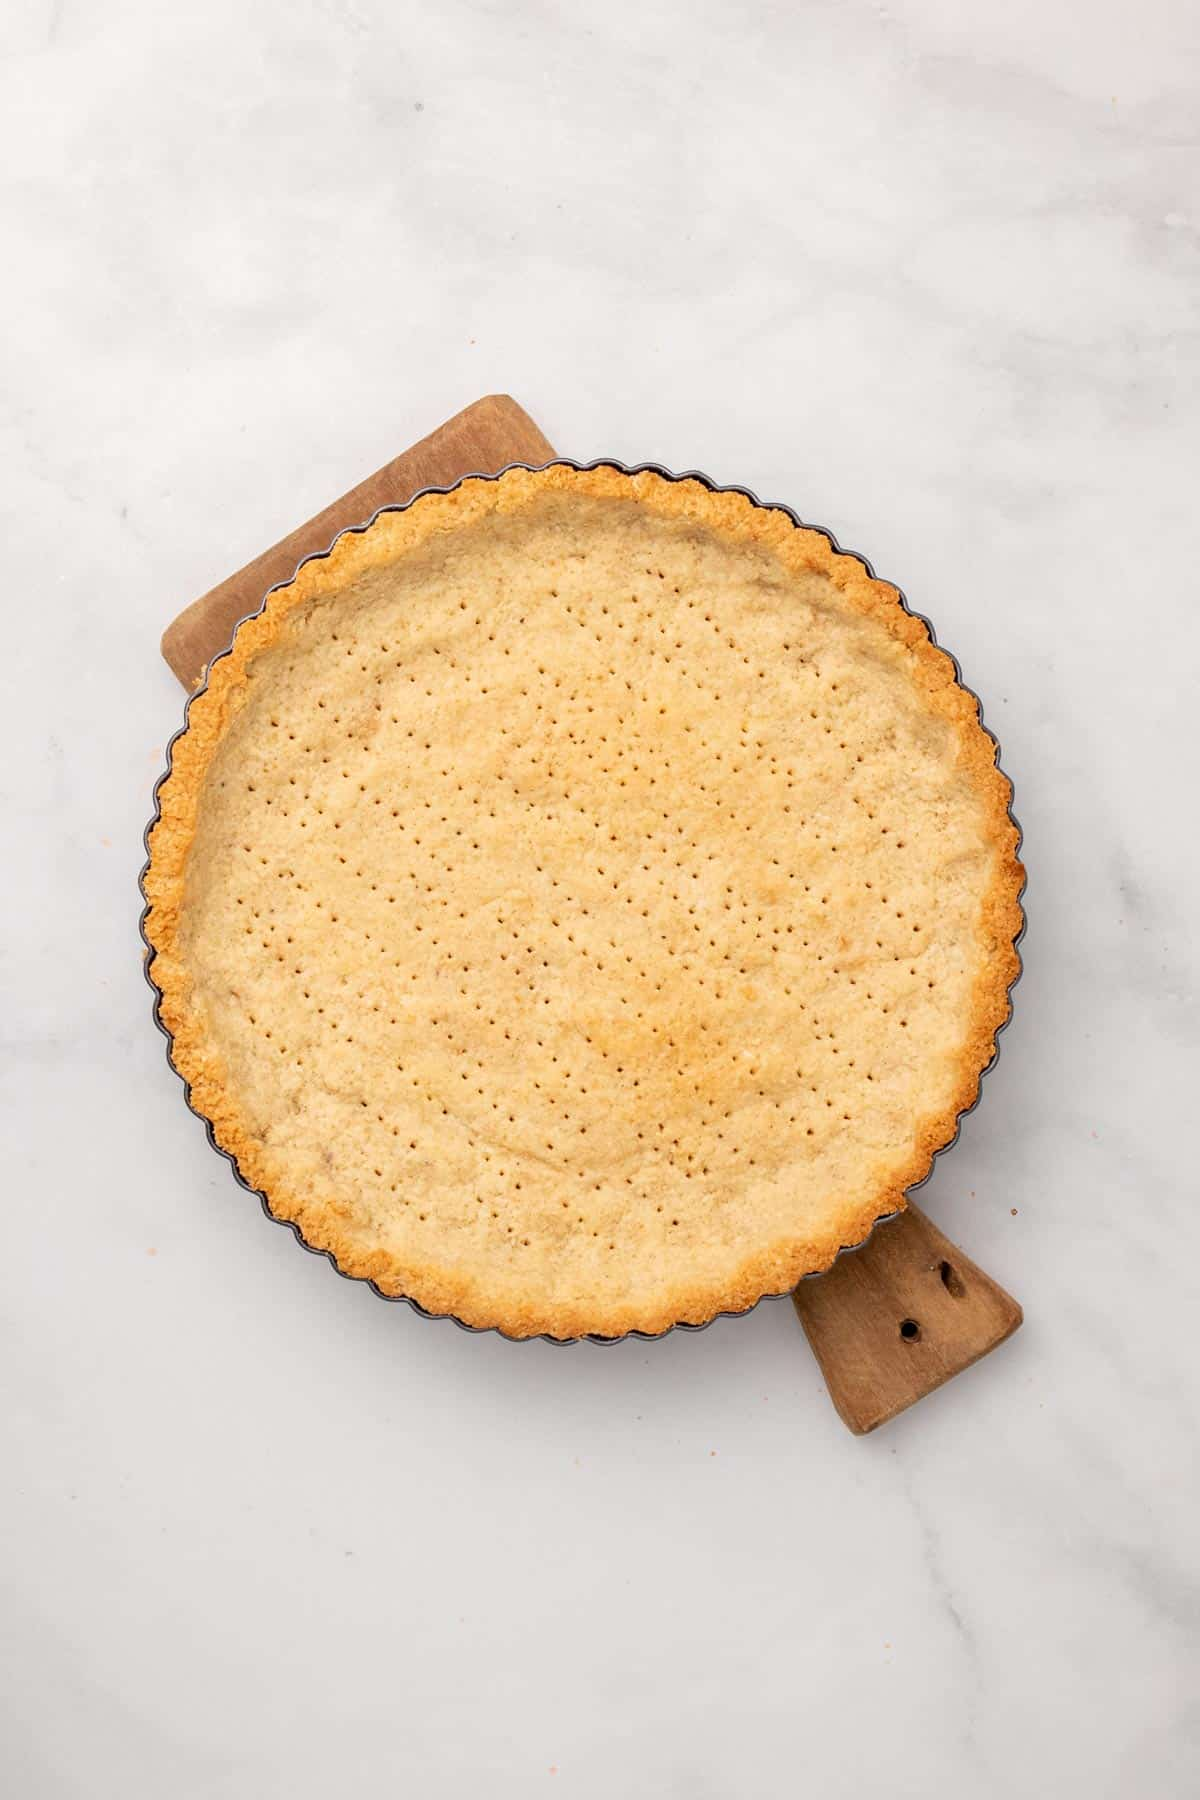 Baked pie crust in pie dish poked full of holes